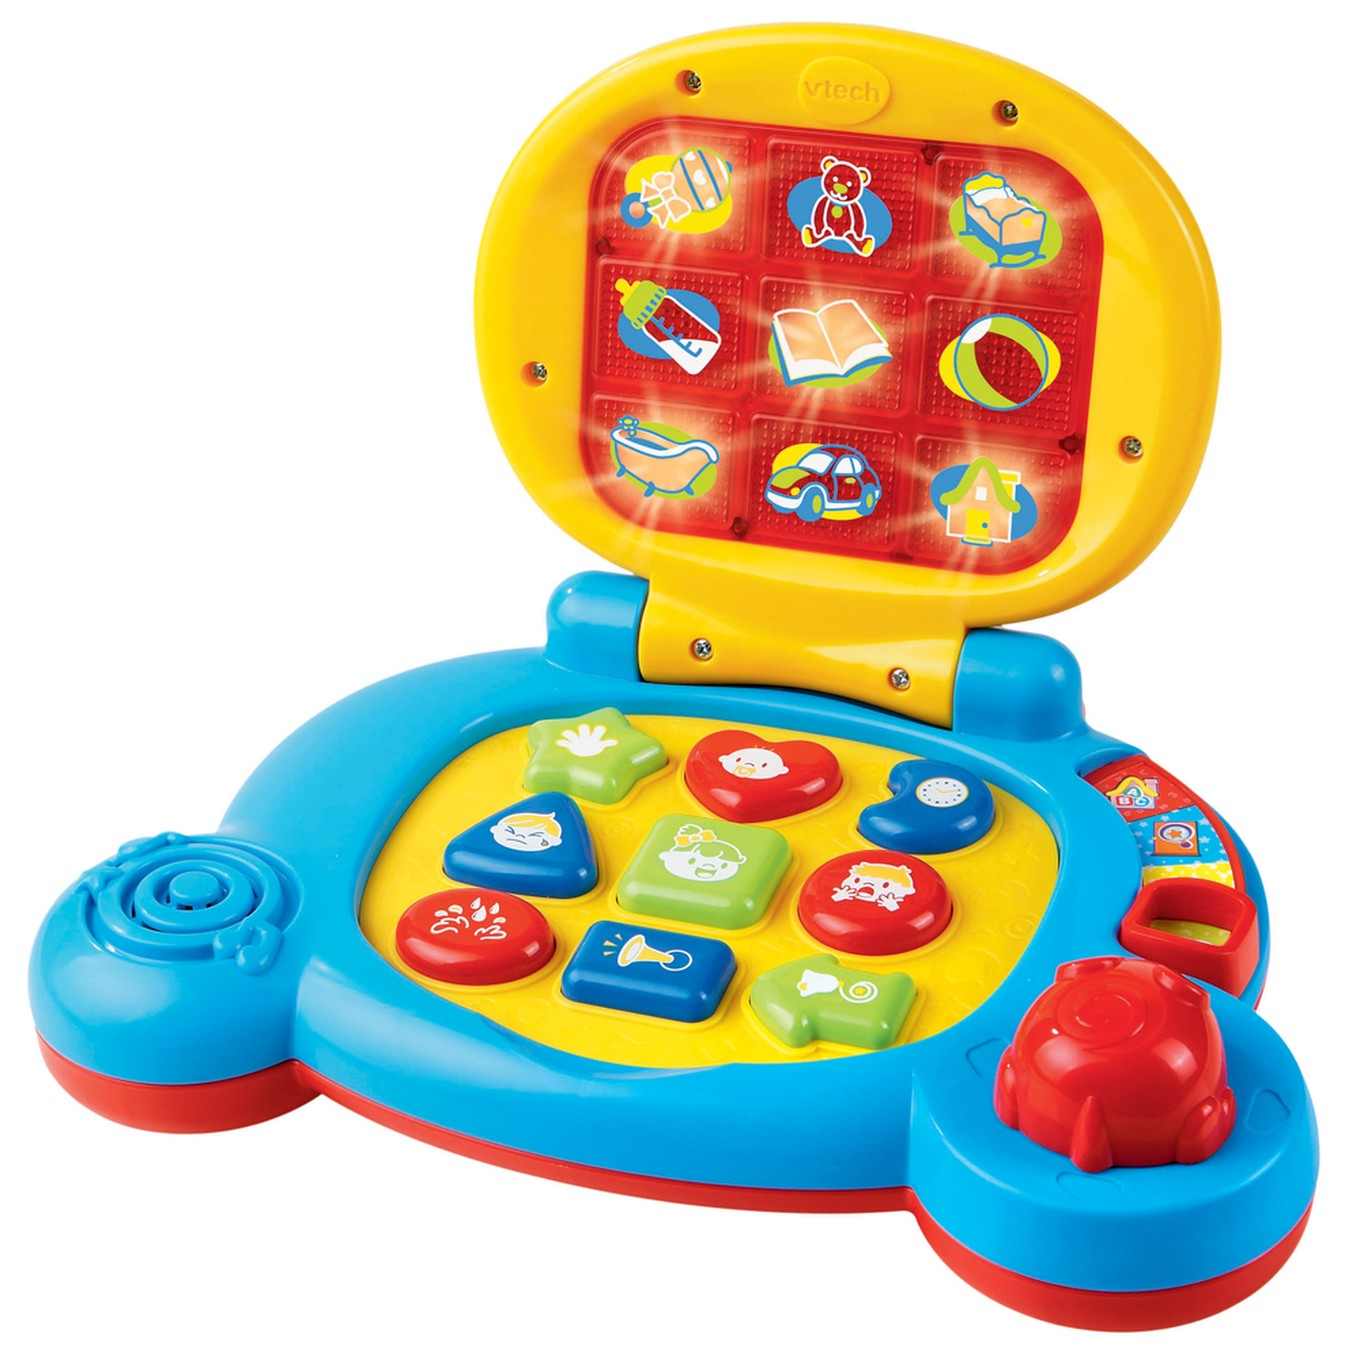 Baby's Learning Laptop | Infant Learning Toy | Vtechkids.com